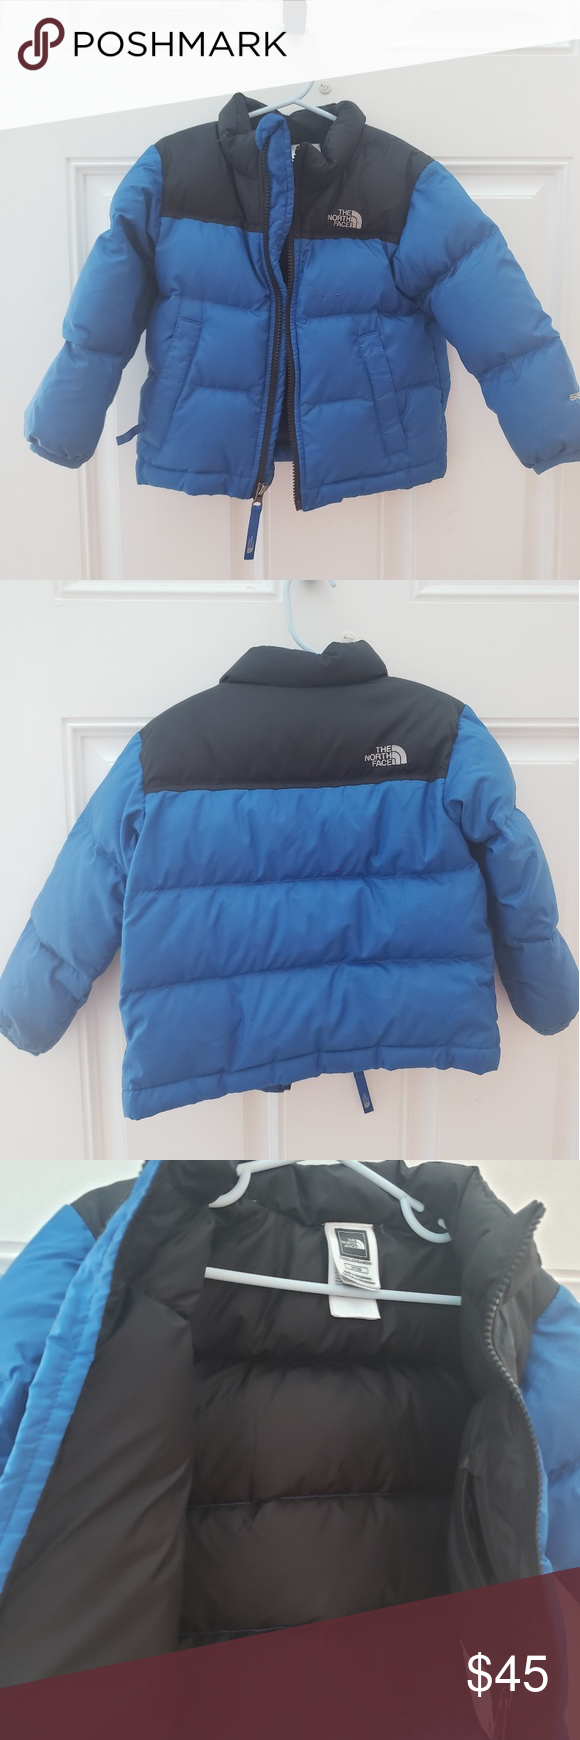 The North Face Toddler Jacket Size 3t Toddler Jacket Jackets Size 3t [ 1740 x 580 Pixel ]